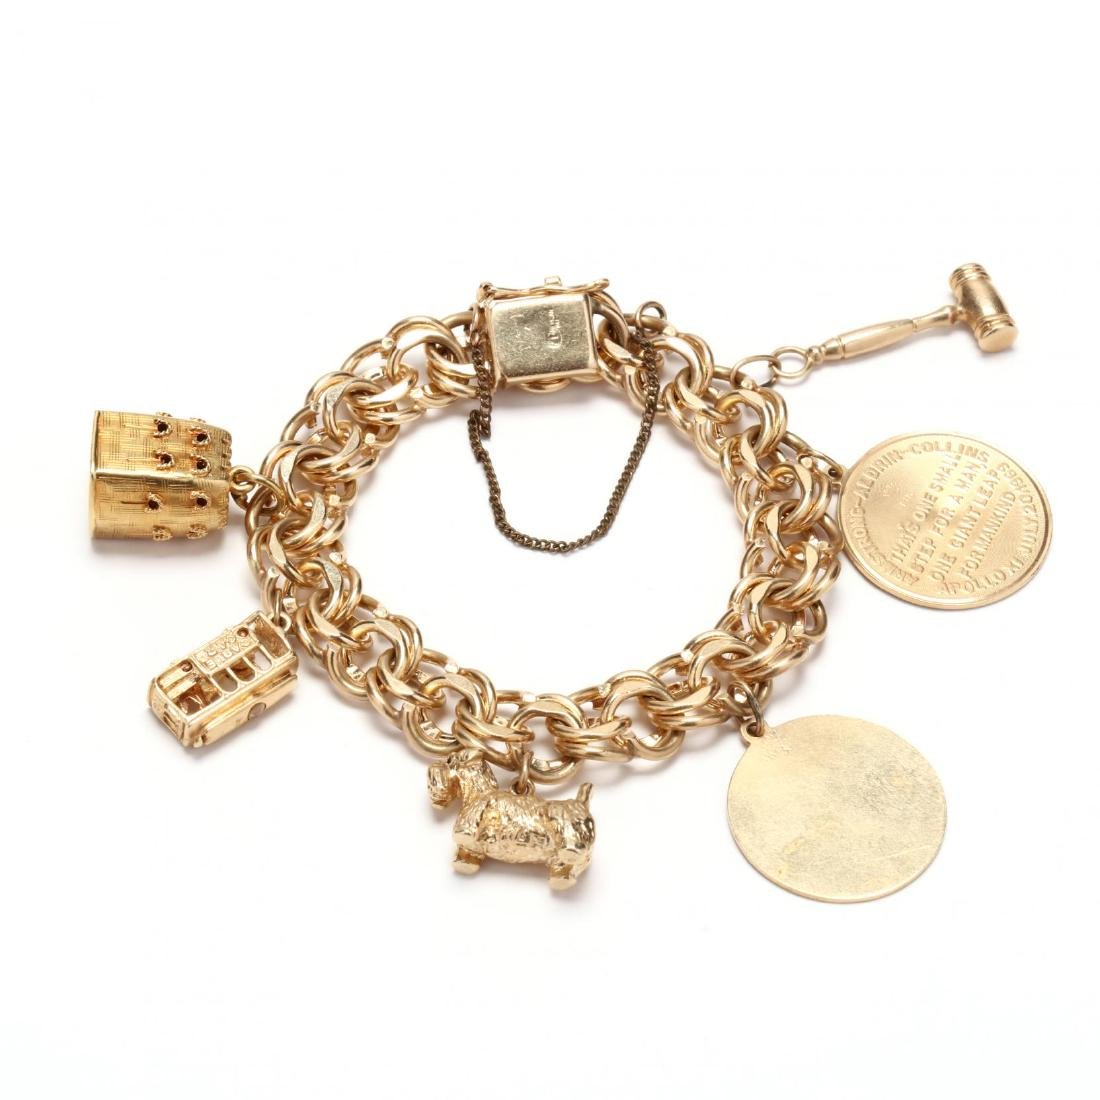 Gold Charm Bracelet and Charms - 3